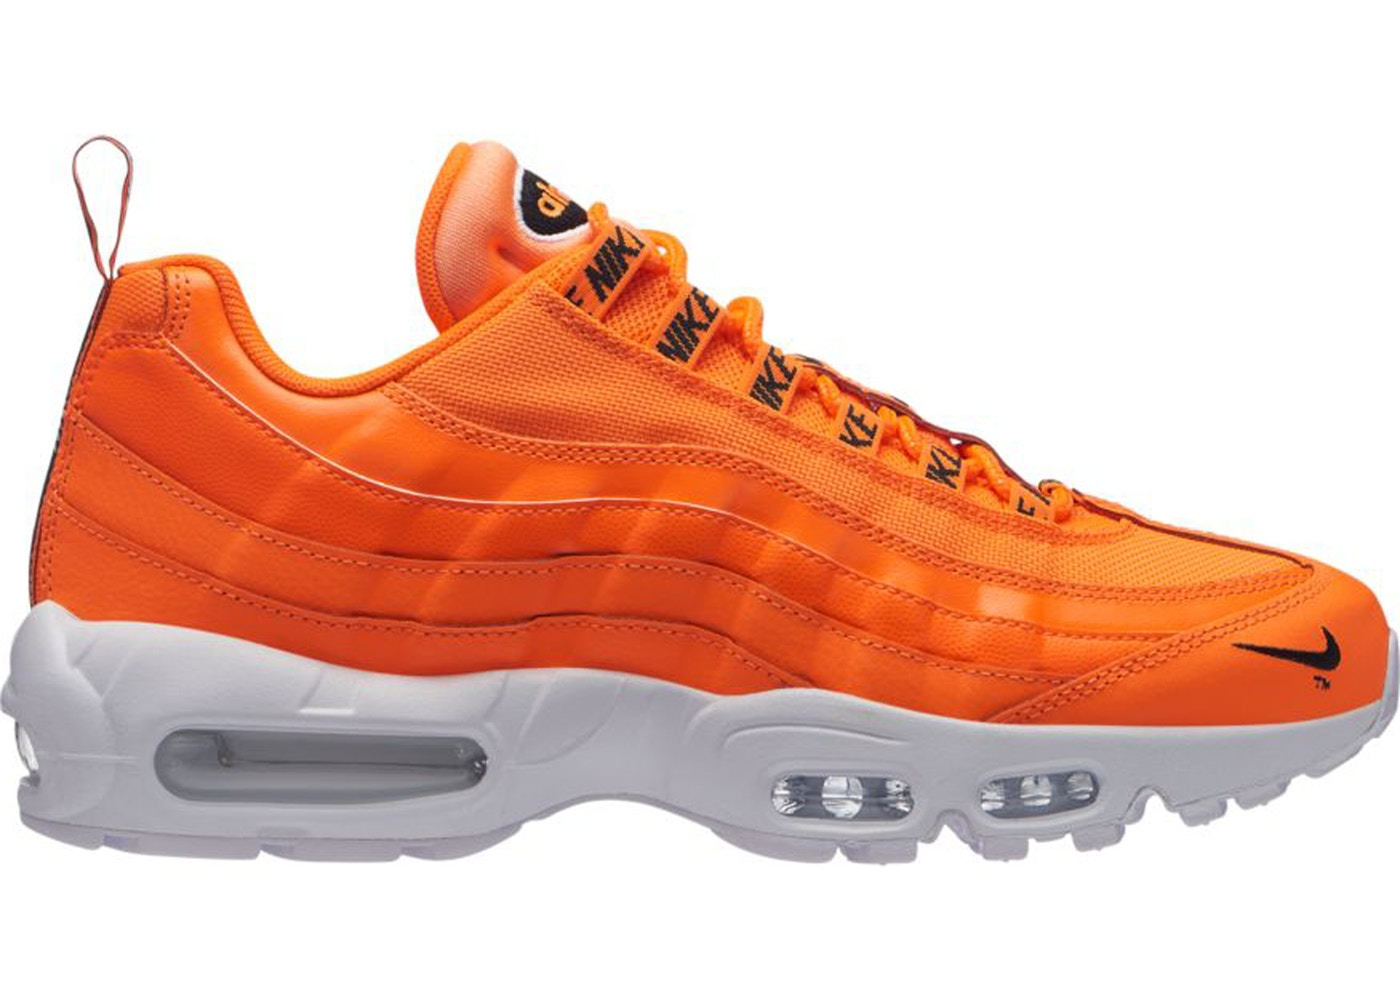 Air Max 95 Overbranding Total Orange - 538416-801 7f2dff8fd